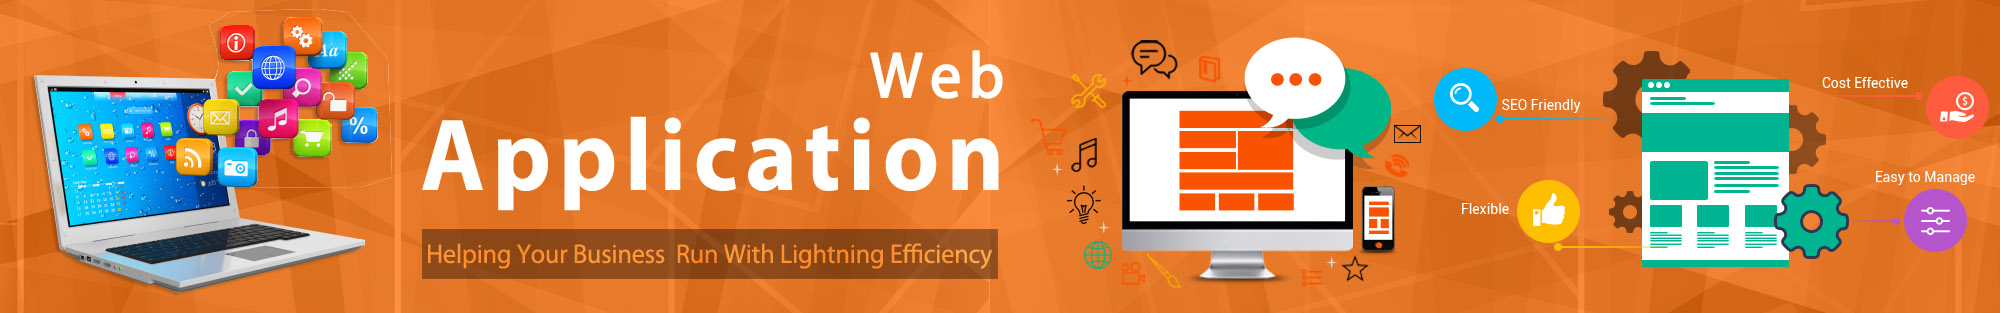 Customize Web Application Development Company Mumbai India